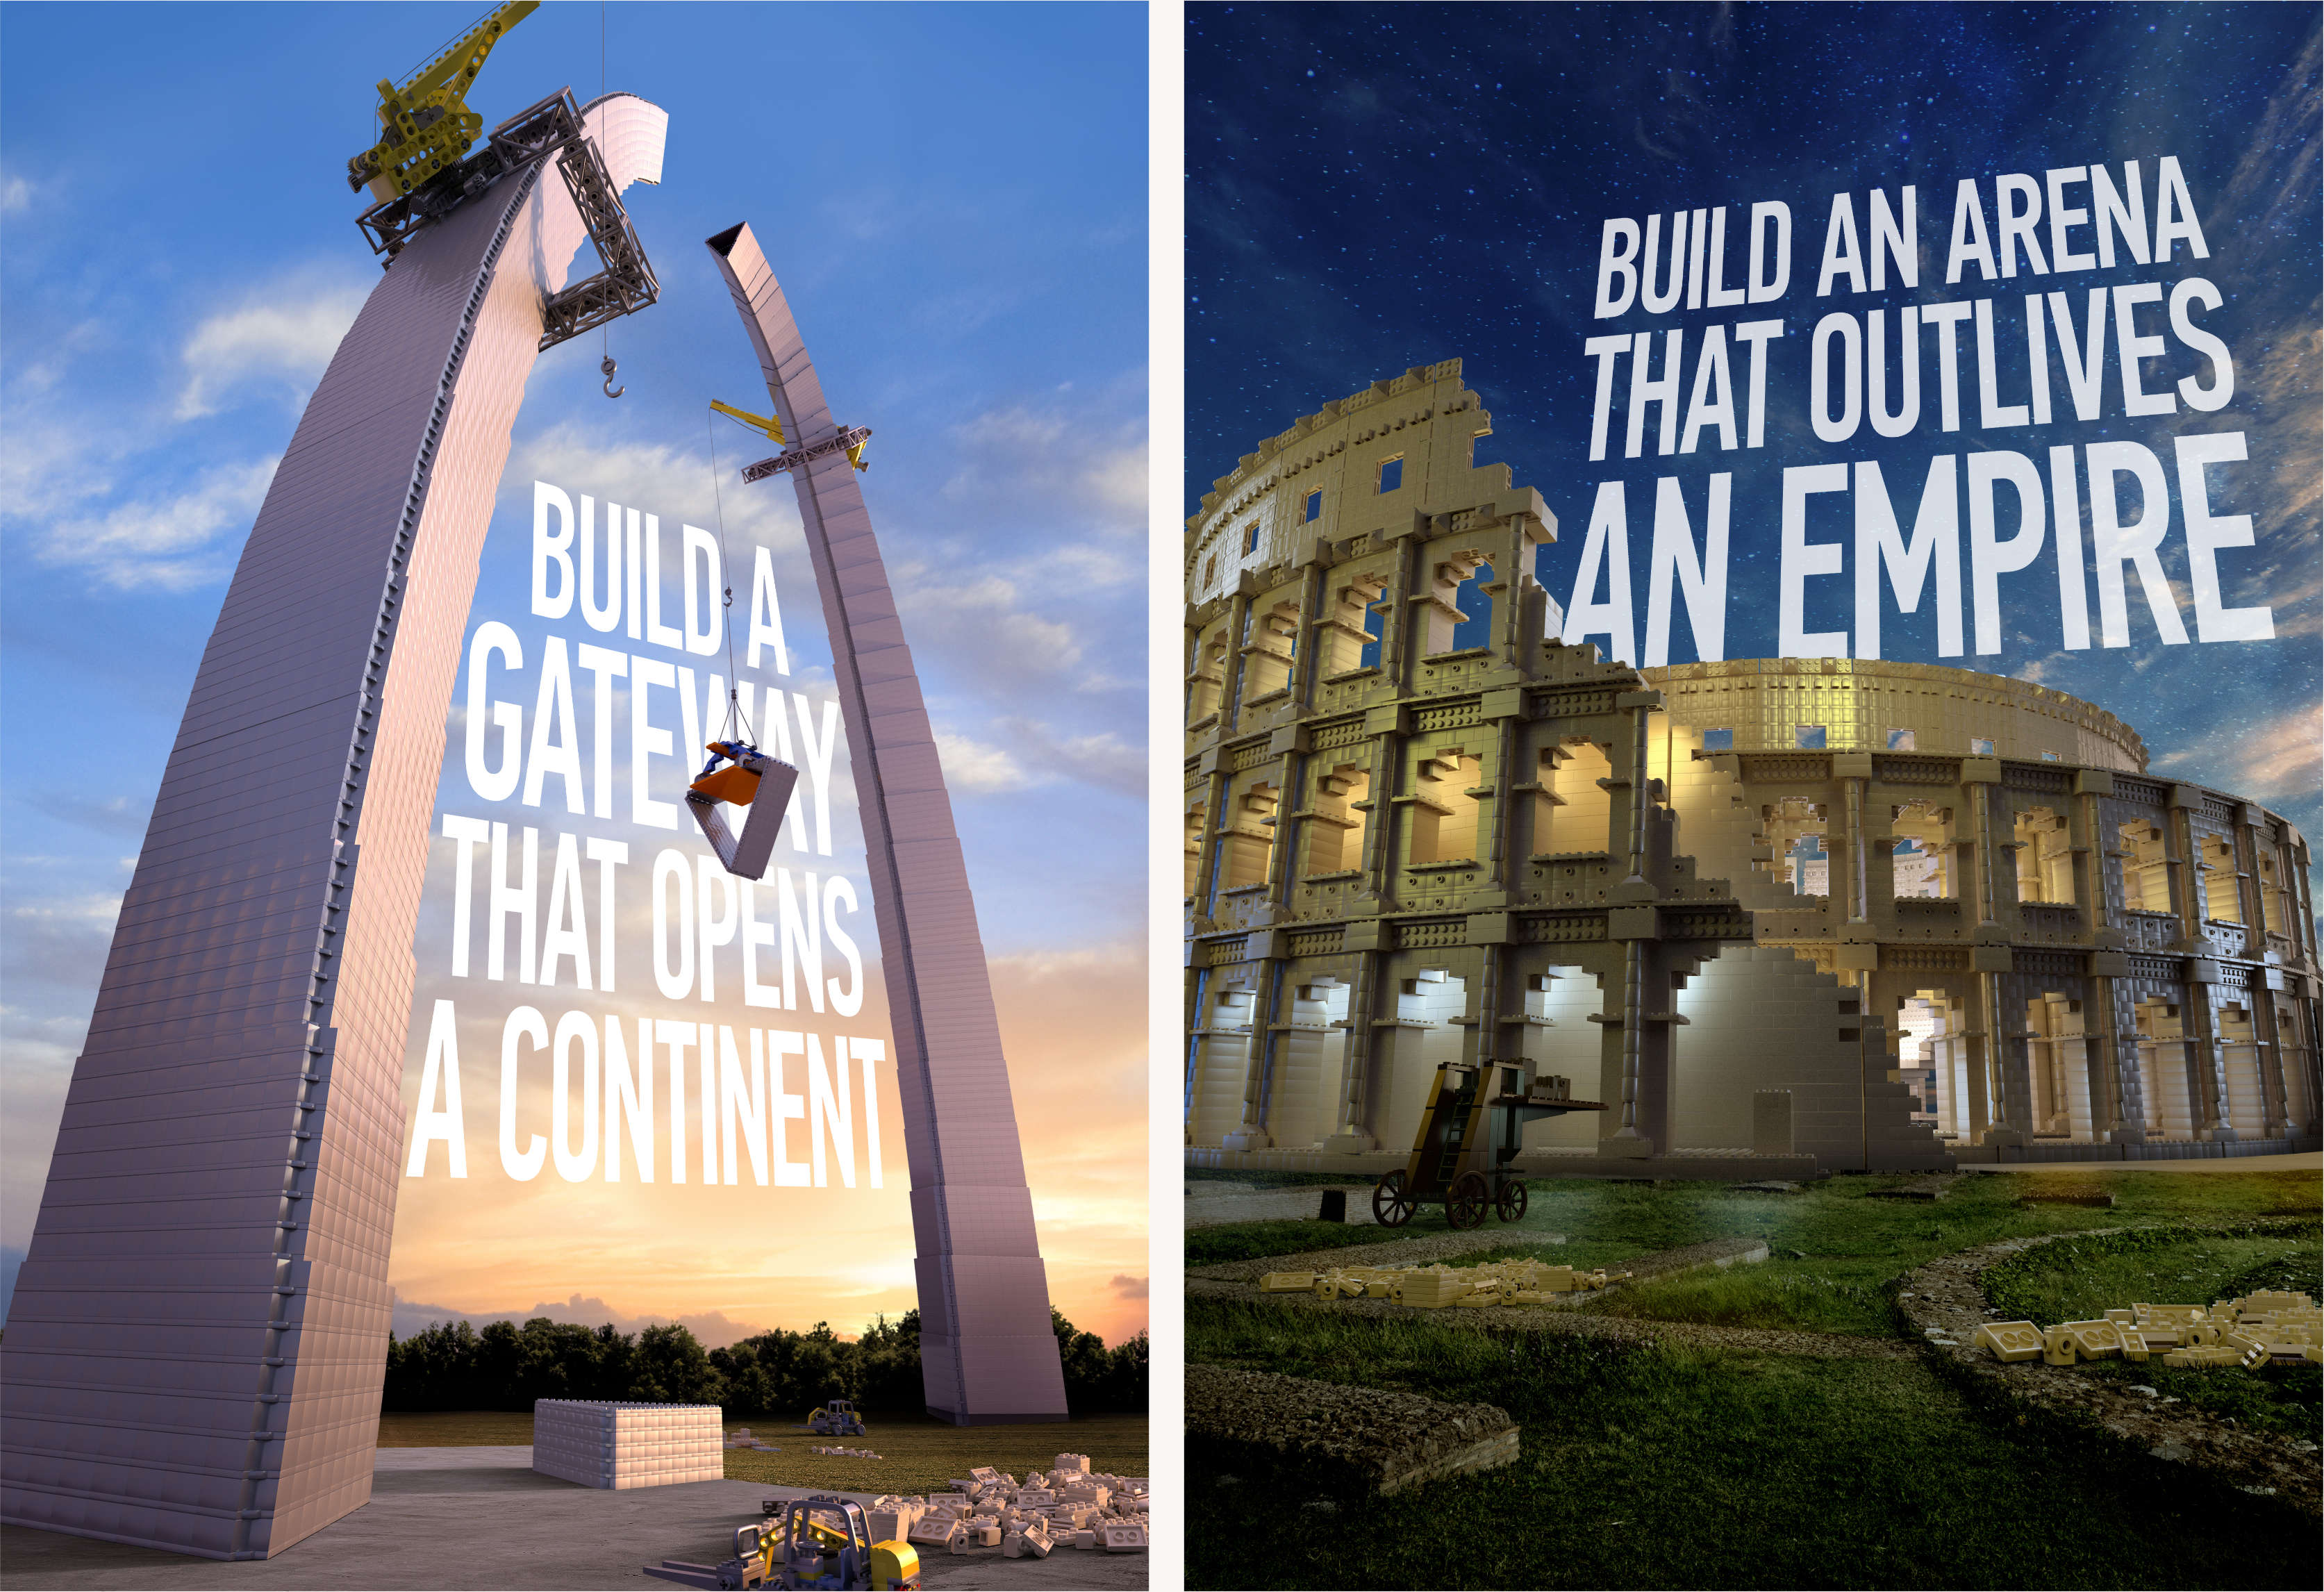 LEGO St. Louis Arch and Roman Coliseum marketing posters.